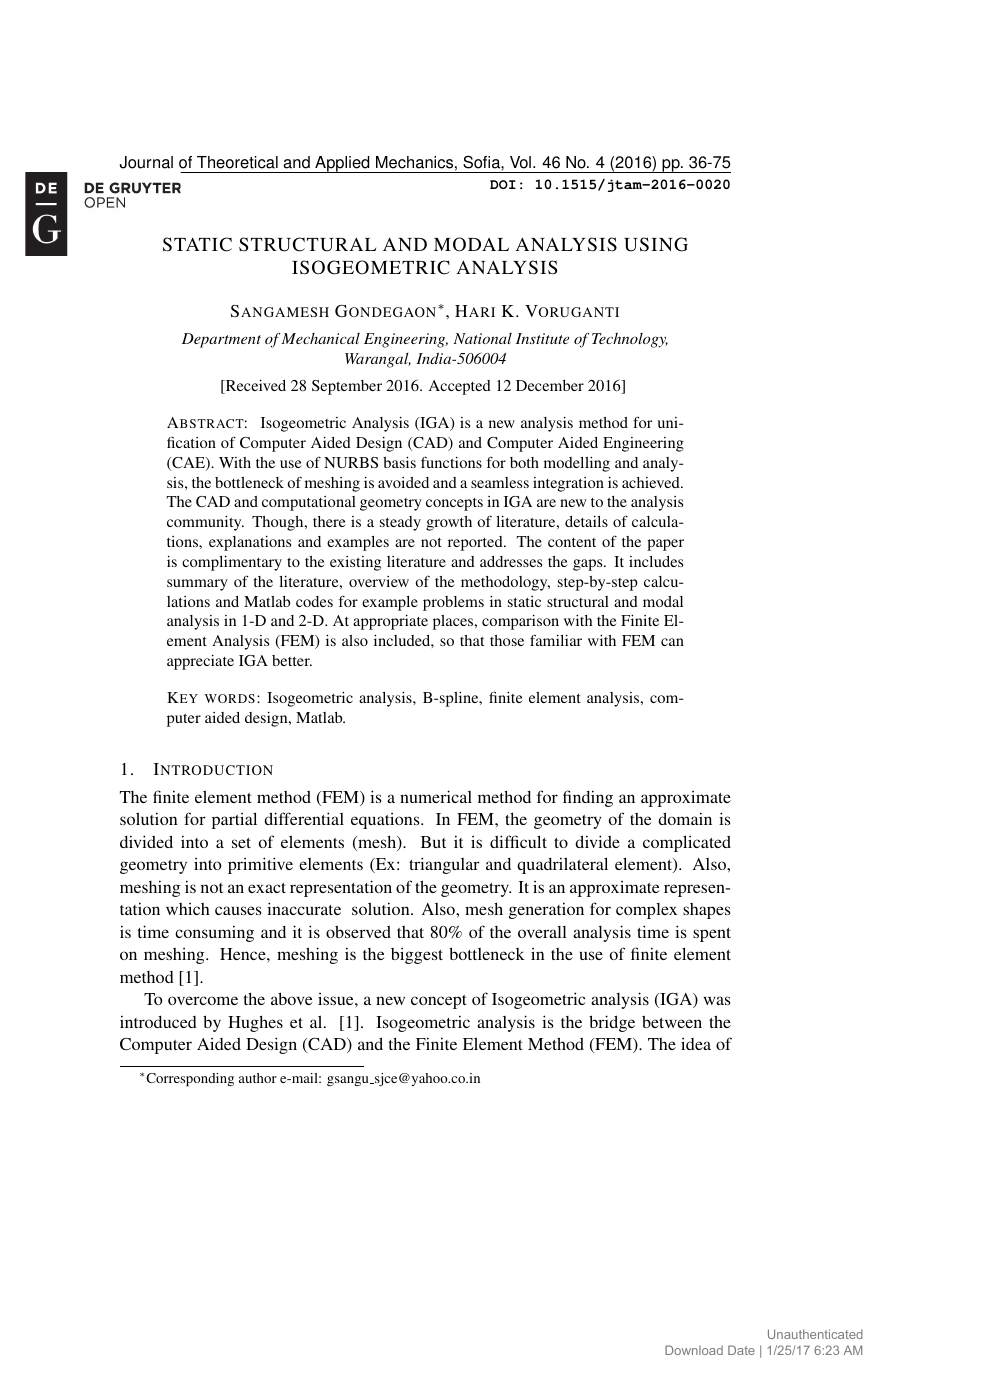 Static Structural and Modal Analysis Using Isogeometric